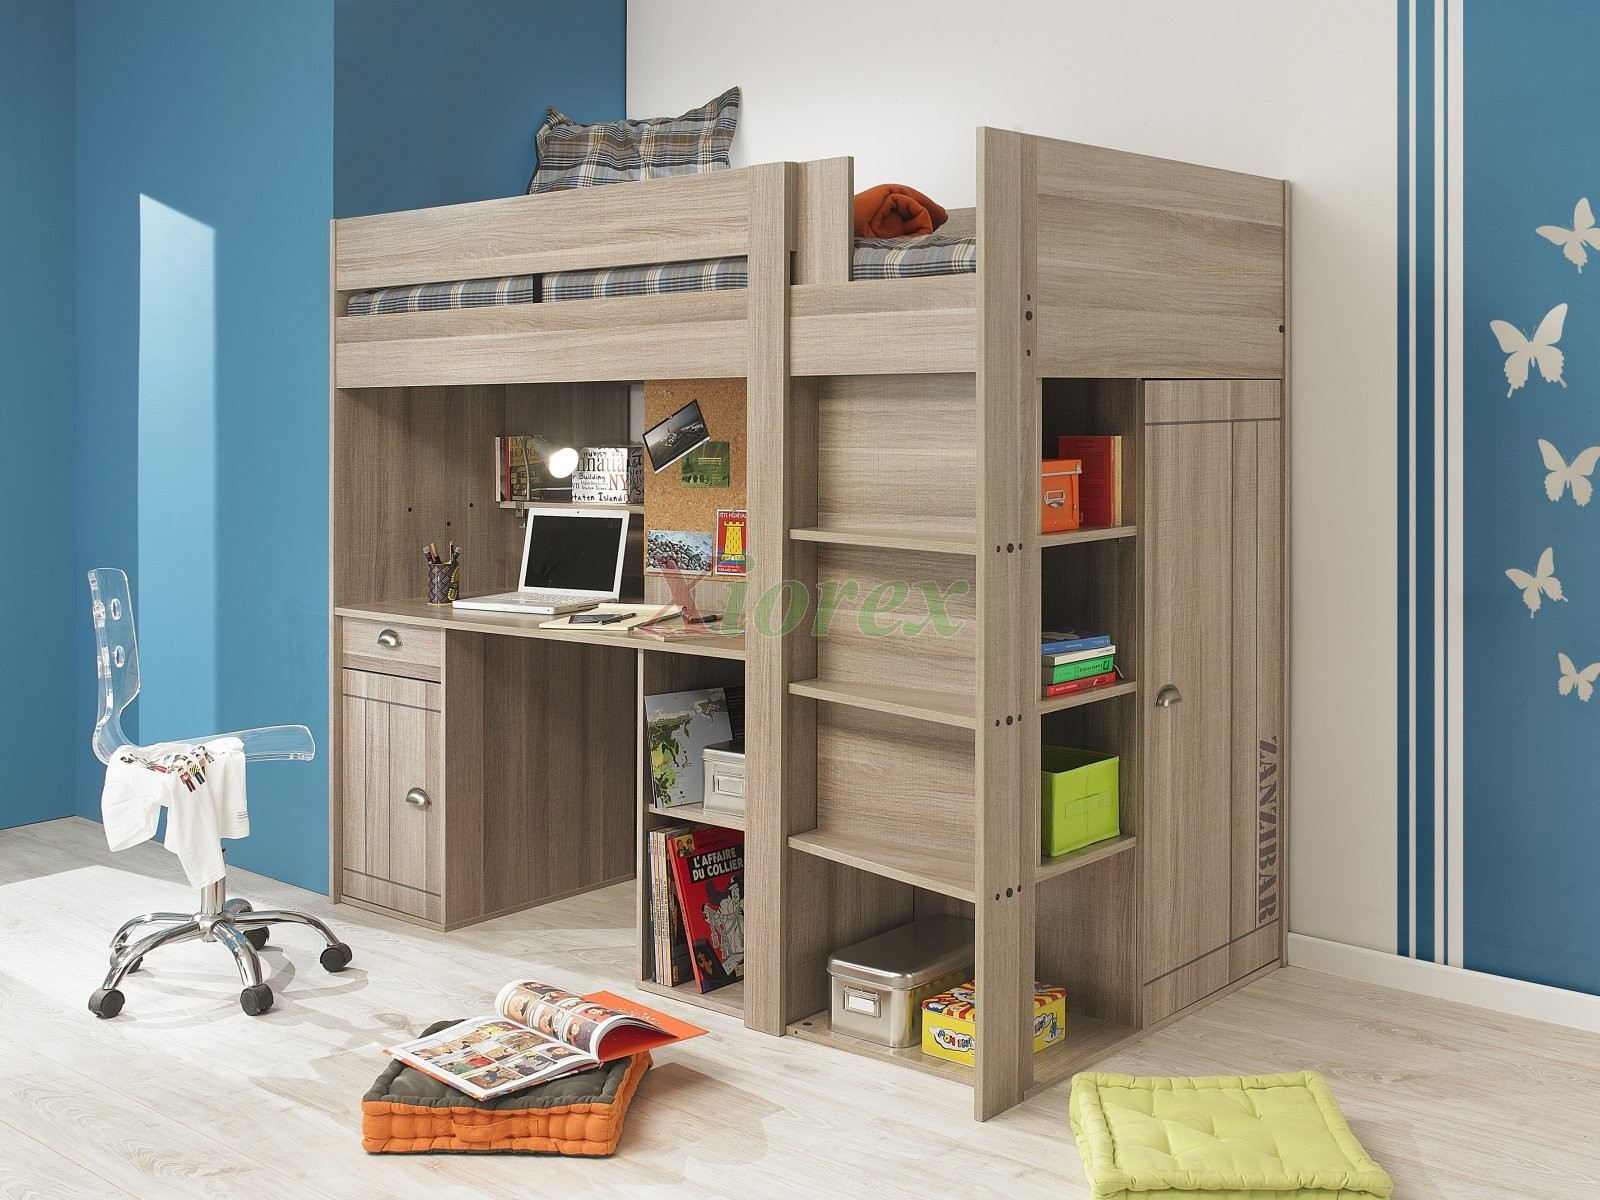 Bedroom loft for teens - Largo Loft Beds For Teenage Girls And Boys By Gautier Furniture